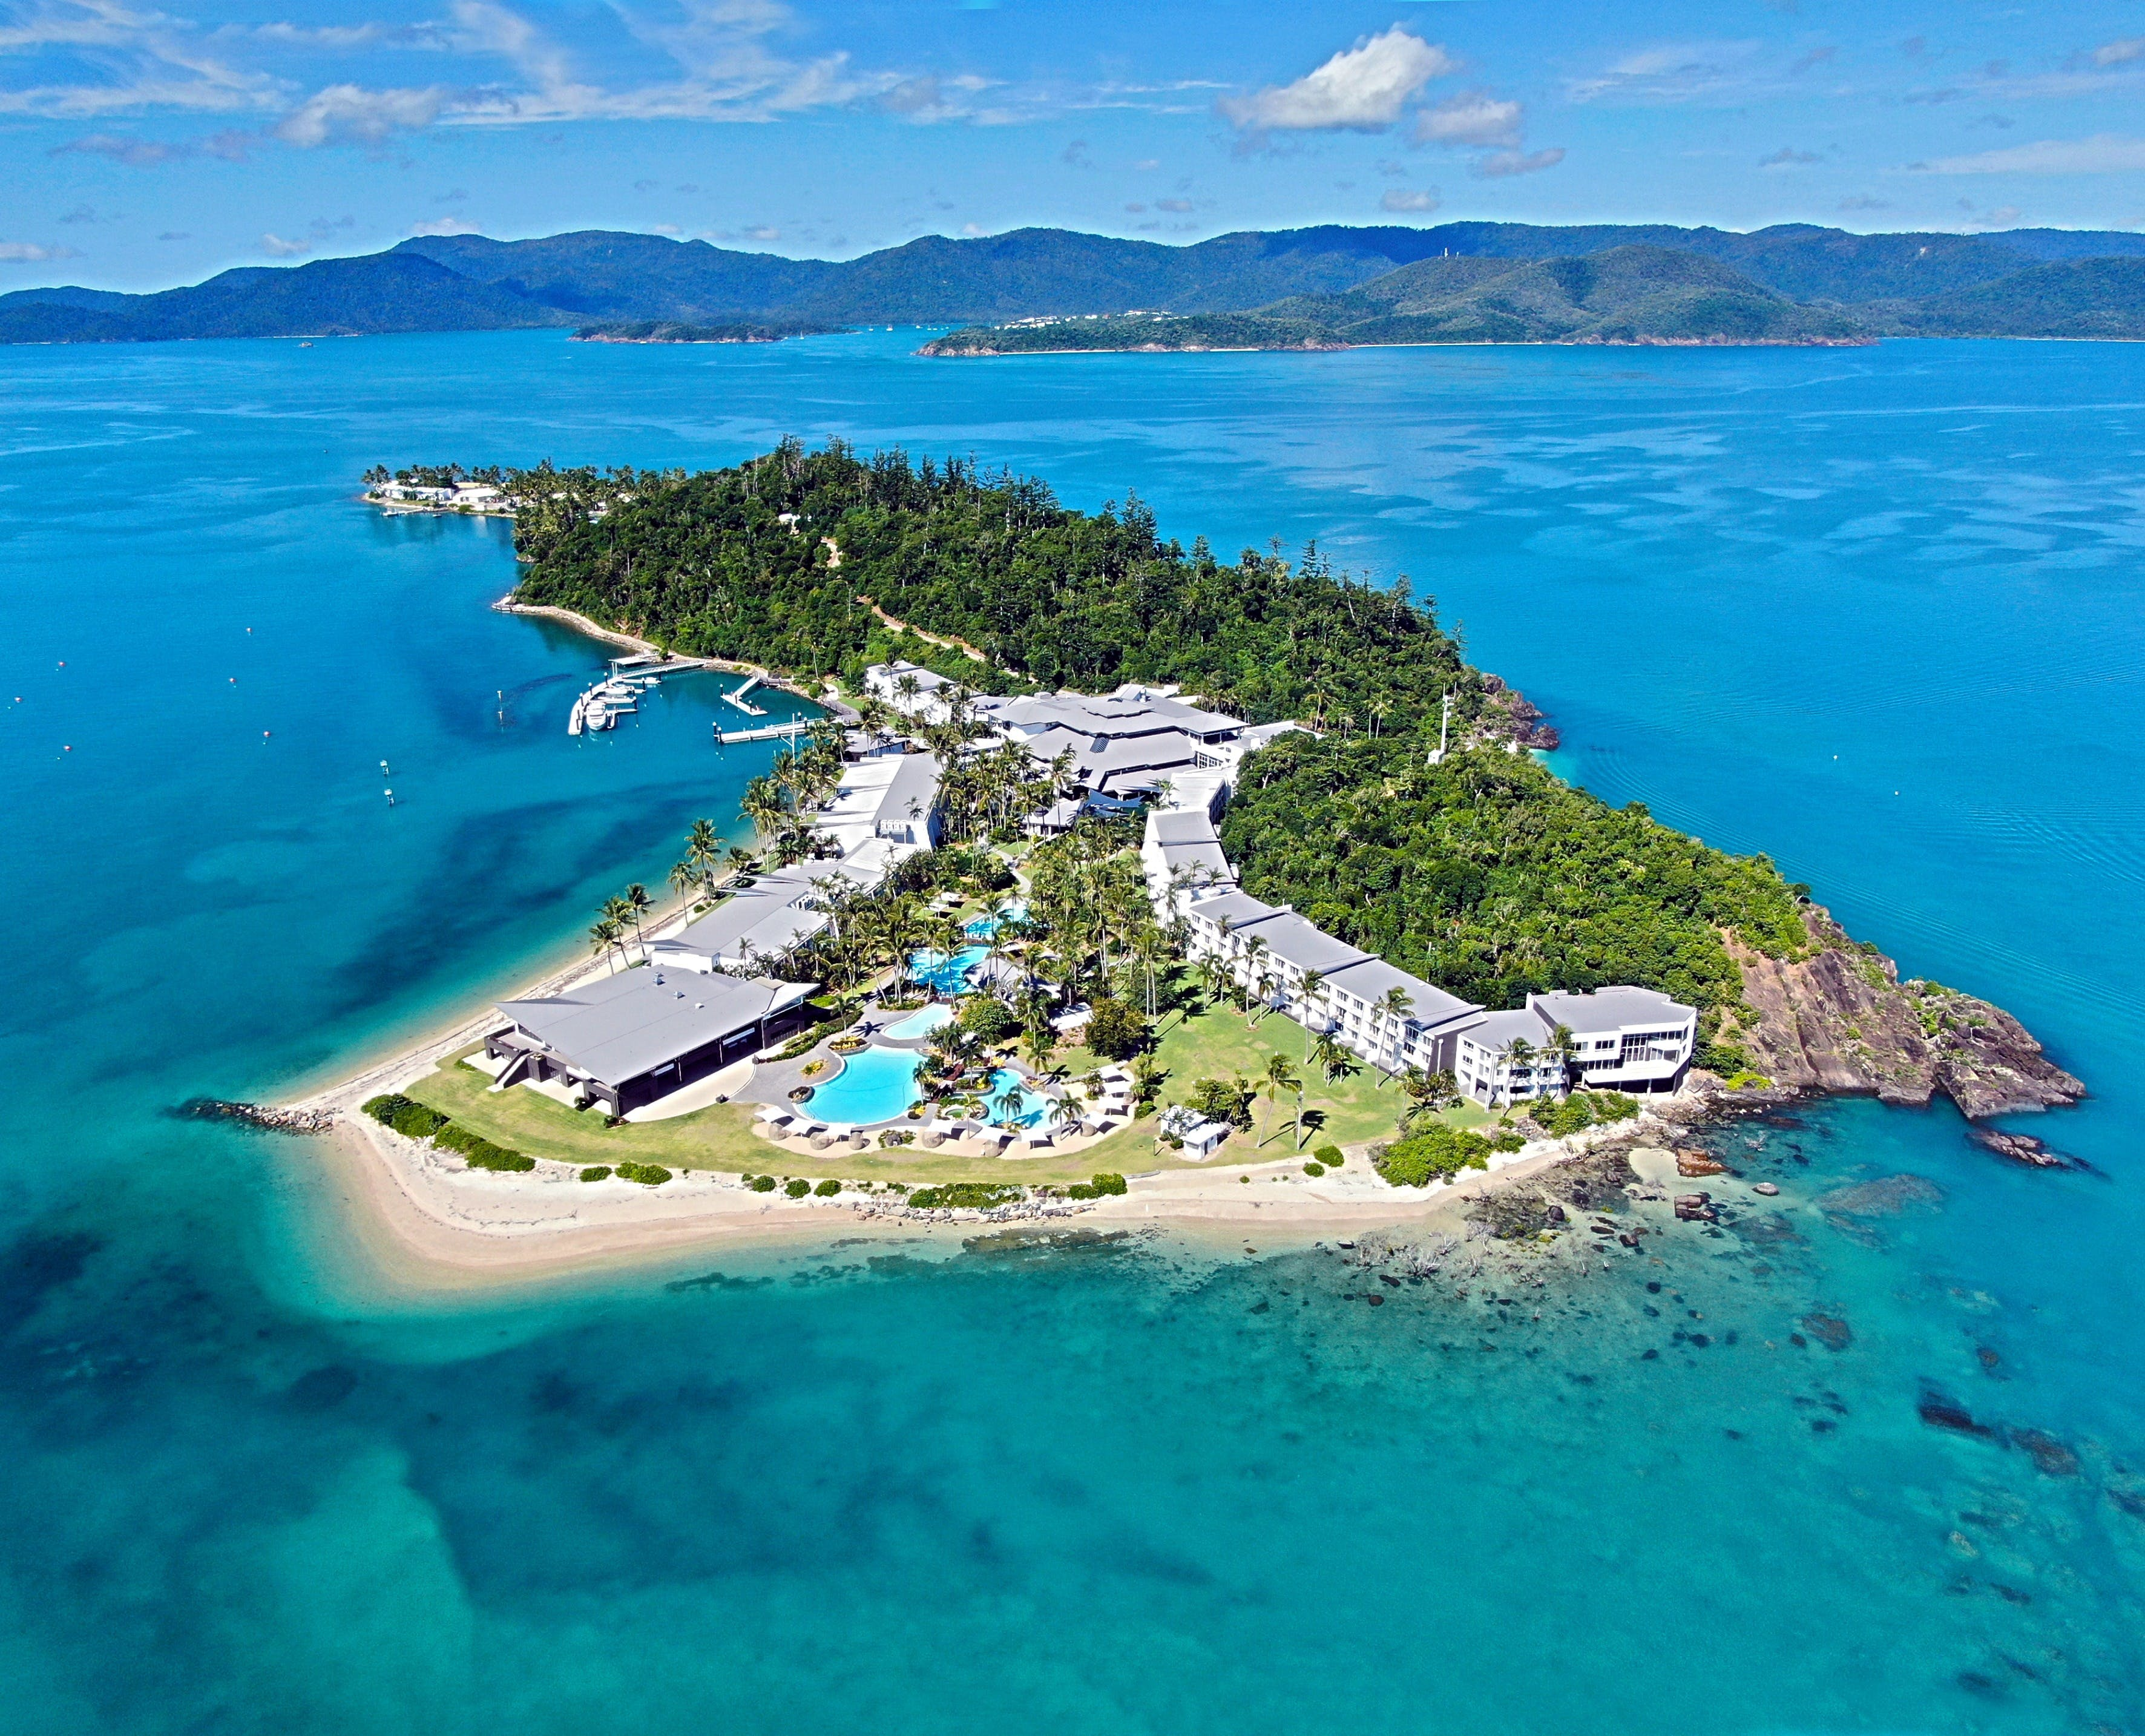 Daydream Island Resort and Living Reef - Whitsundays Tourism